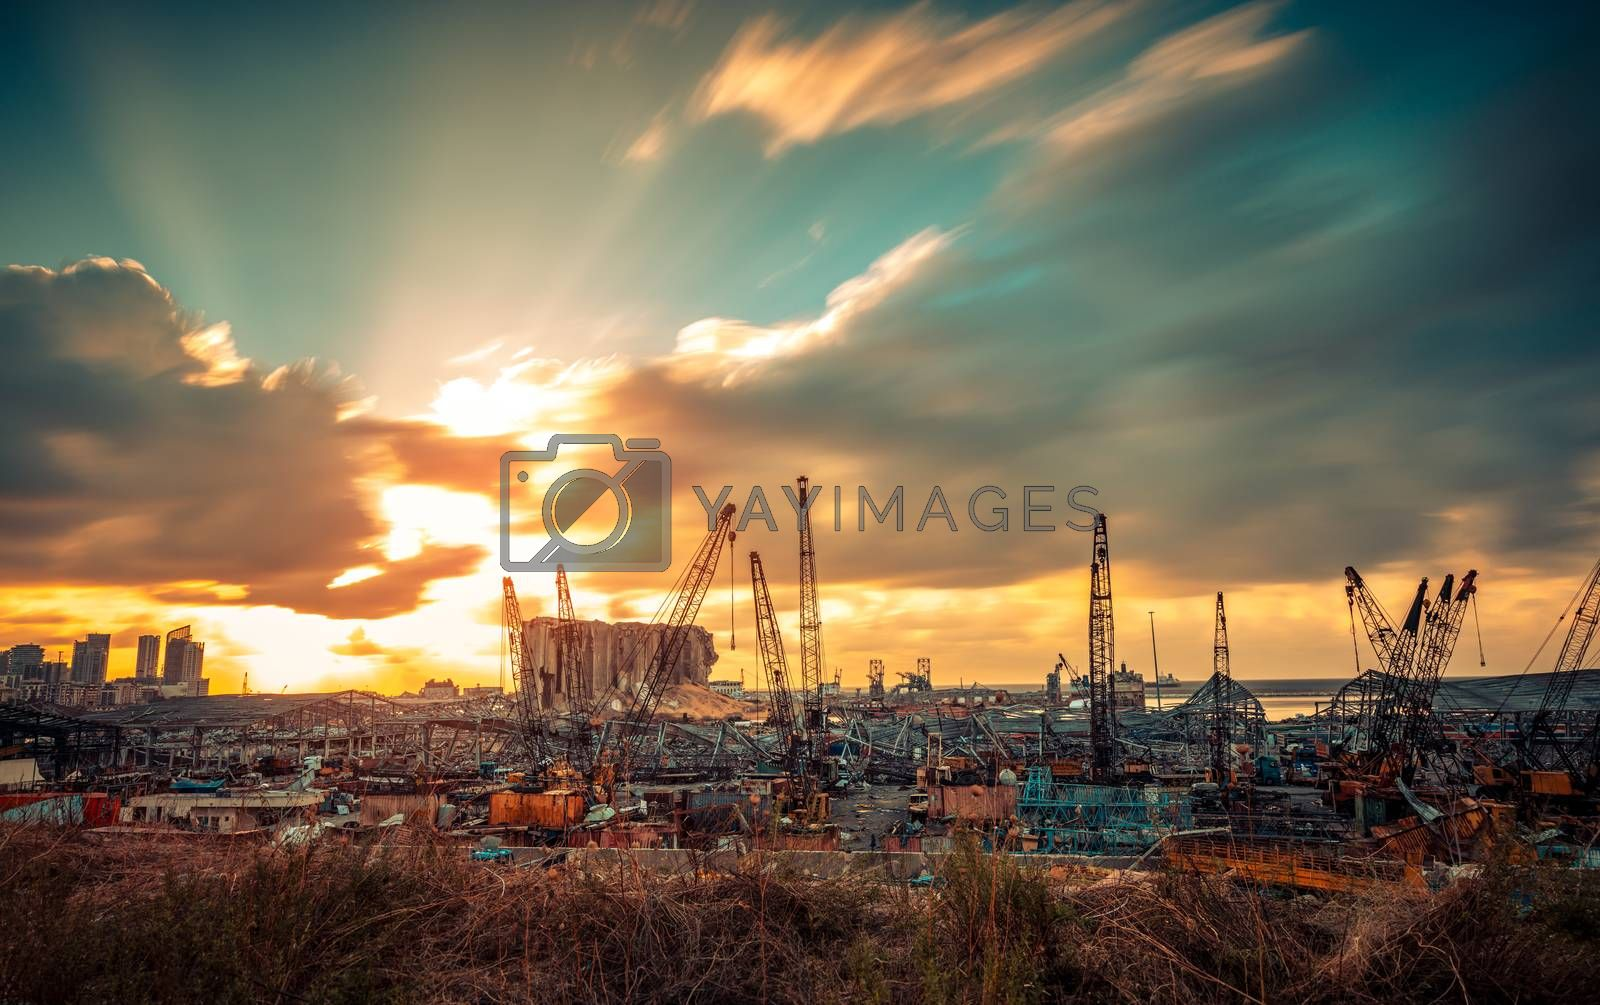 Royalty free image of Rebuilding Beirut by Anna_Omelchenko